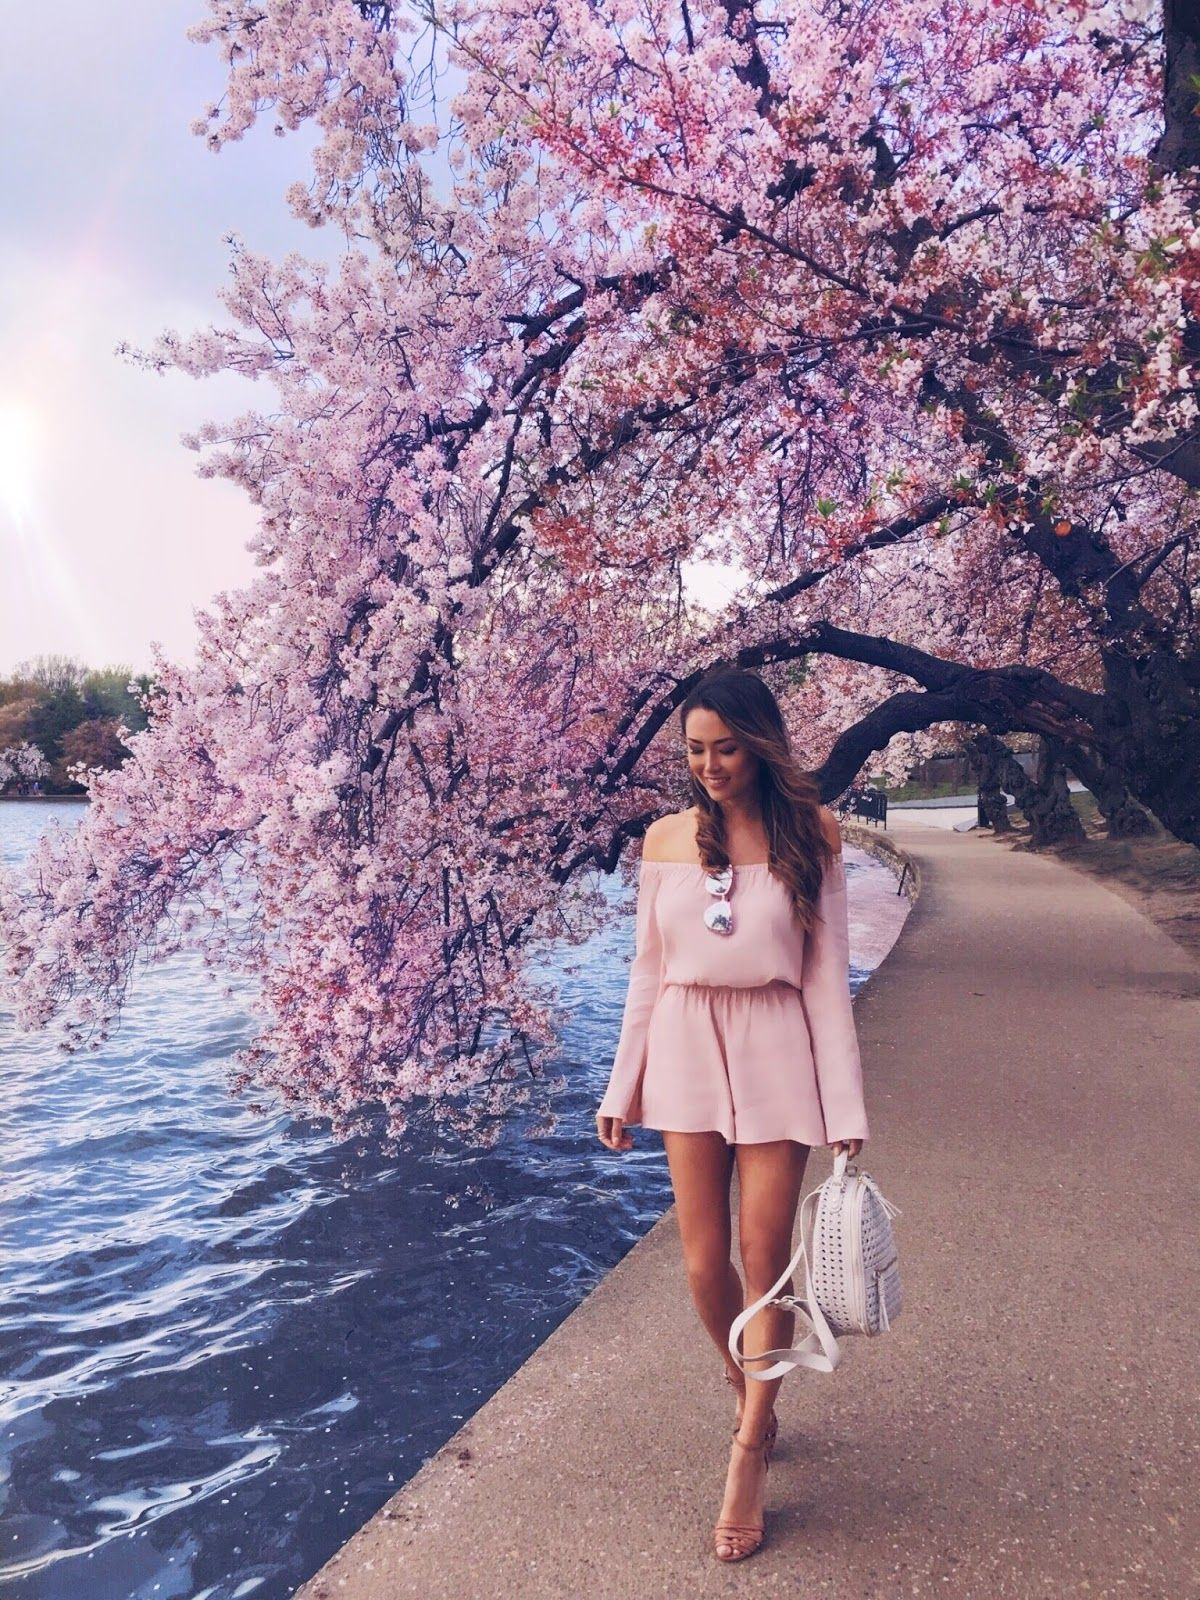 Pin By Alana Upton On Jessica Ricks Cherry Blossom Outfit Fashion Blogger Photography Photoshoot Outfits